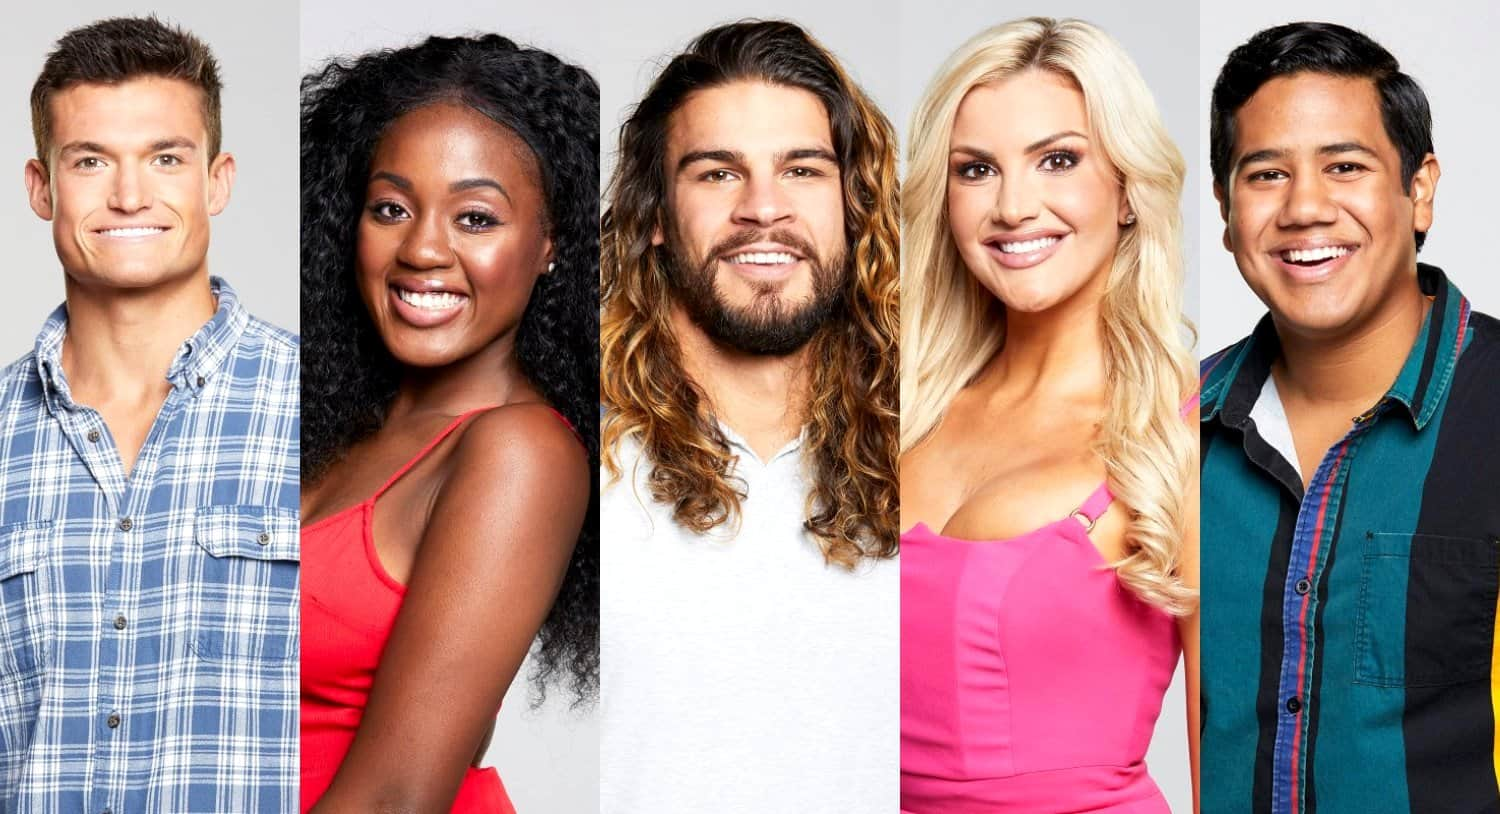 PHOTOS - Meet the Cast of Big Brother 21! See Photos and Bios of 16 New Houseguests!